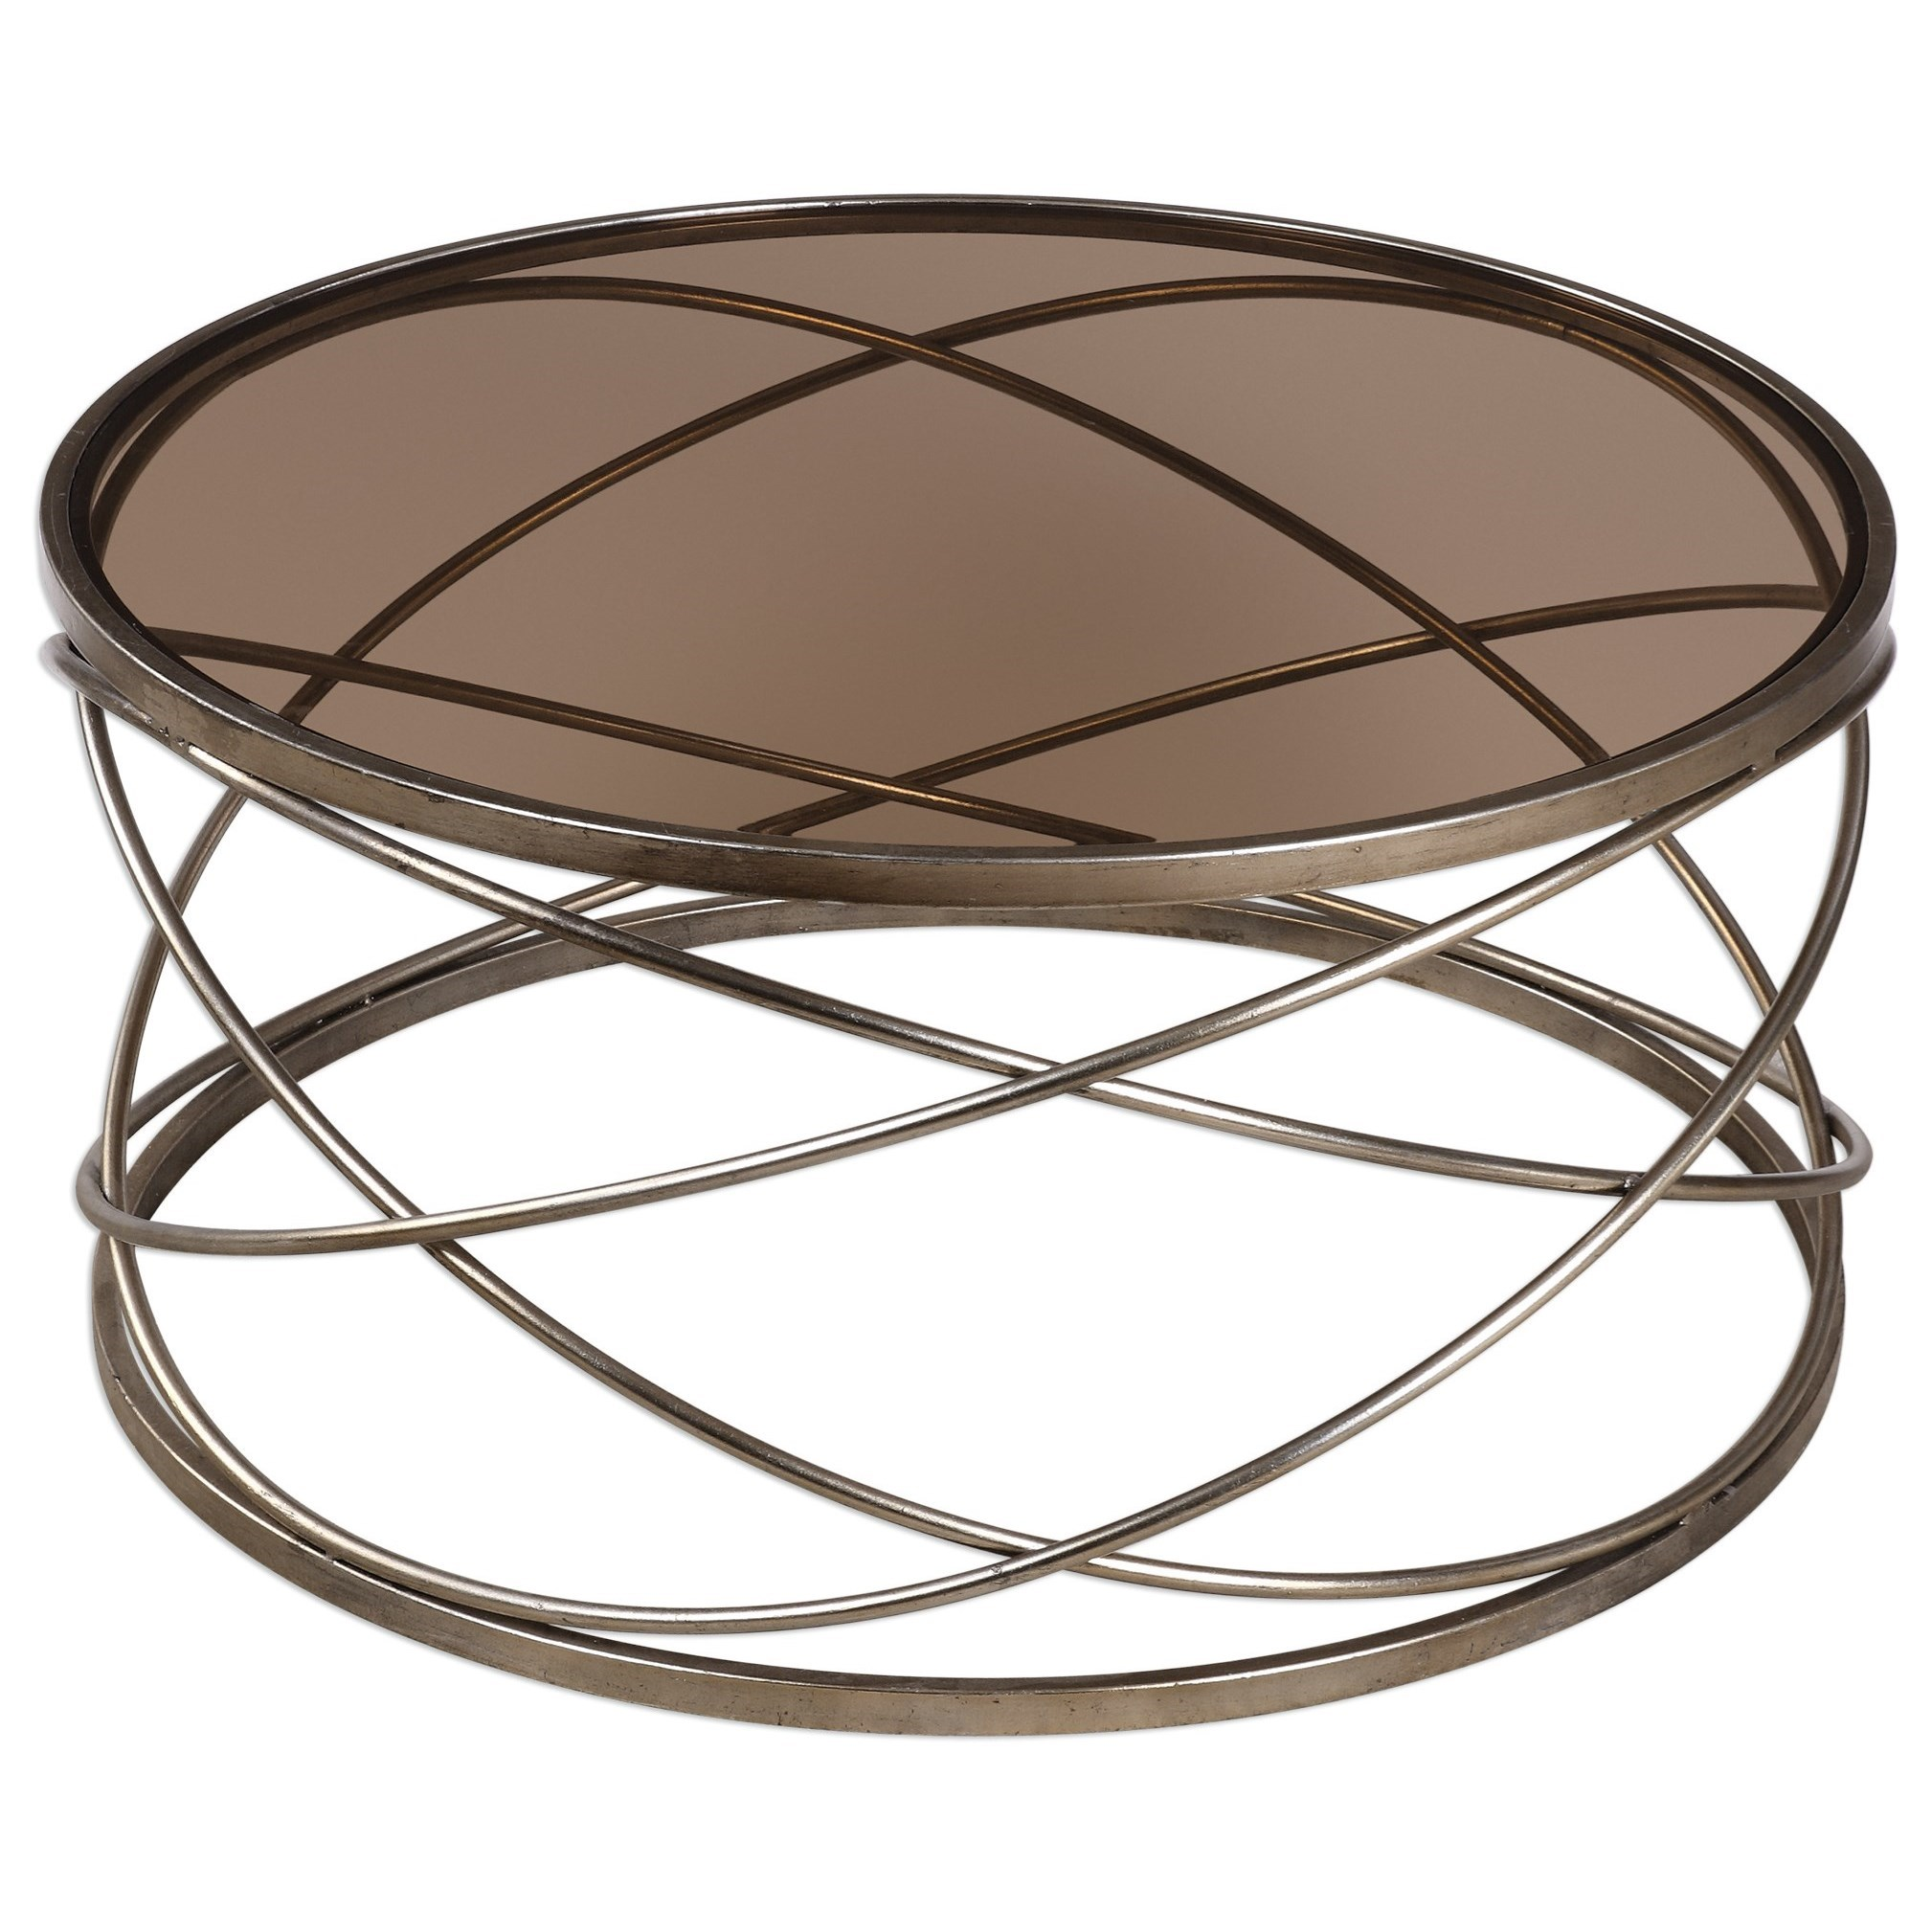 Uttermost Accent Furniture Marella Coffee Table - Item Number: 24697